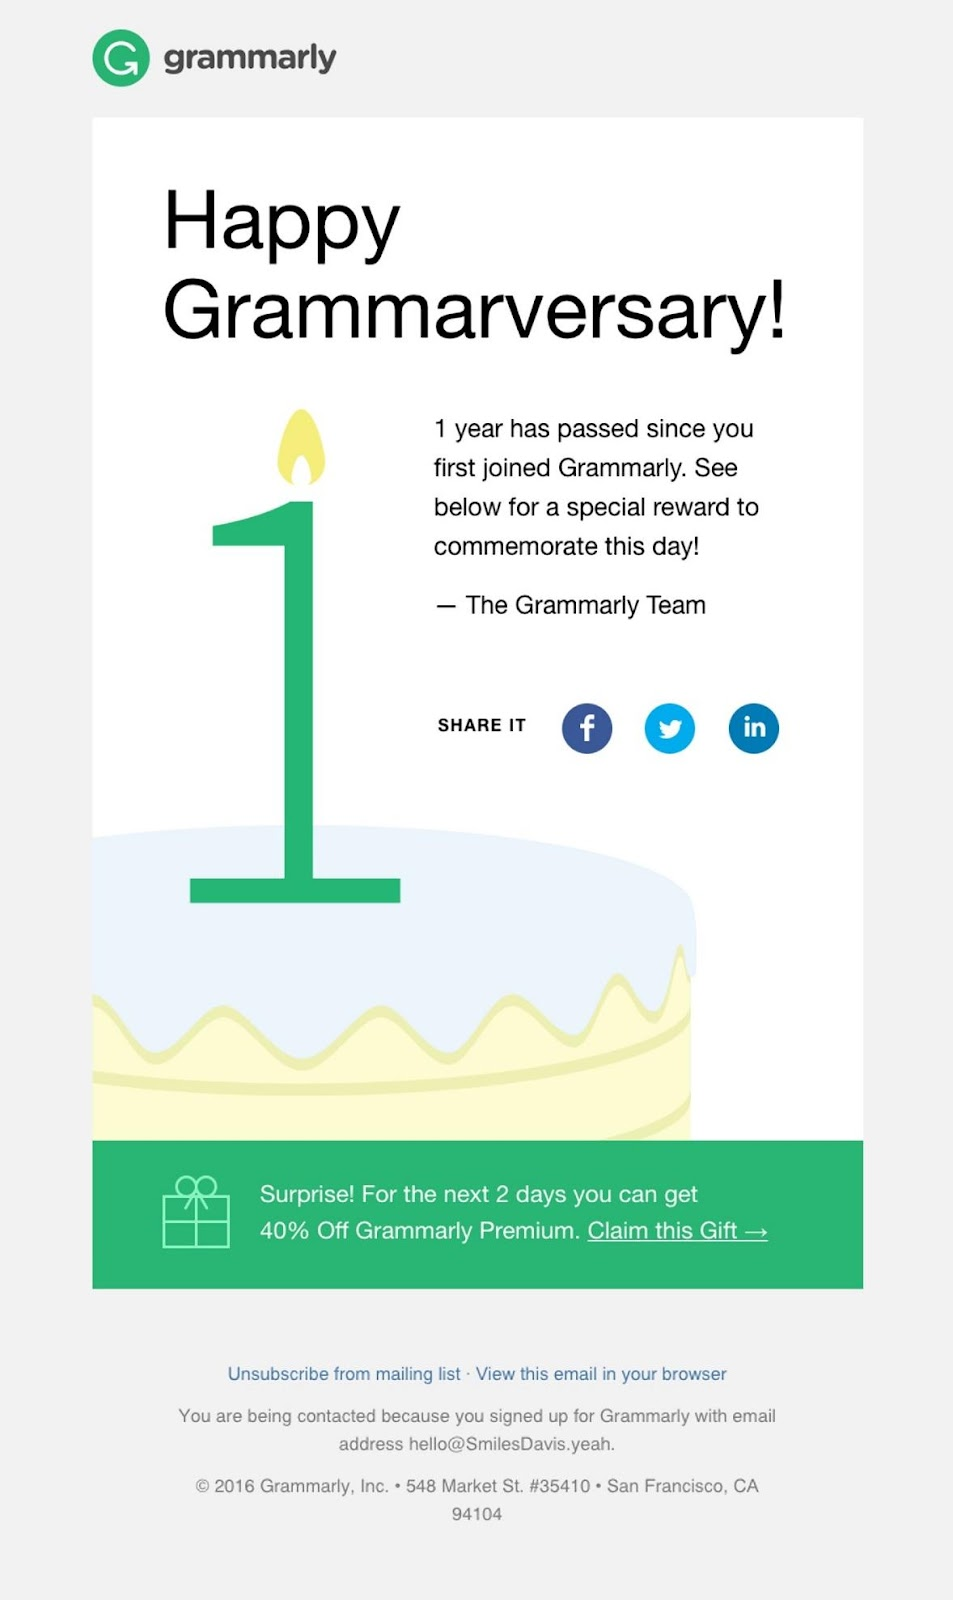 Grammarly email example of appreciating customers